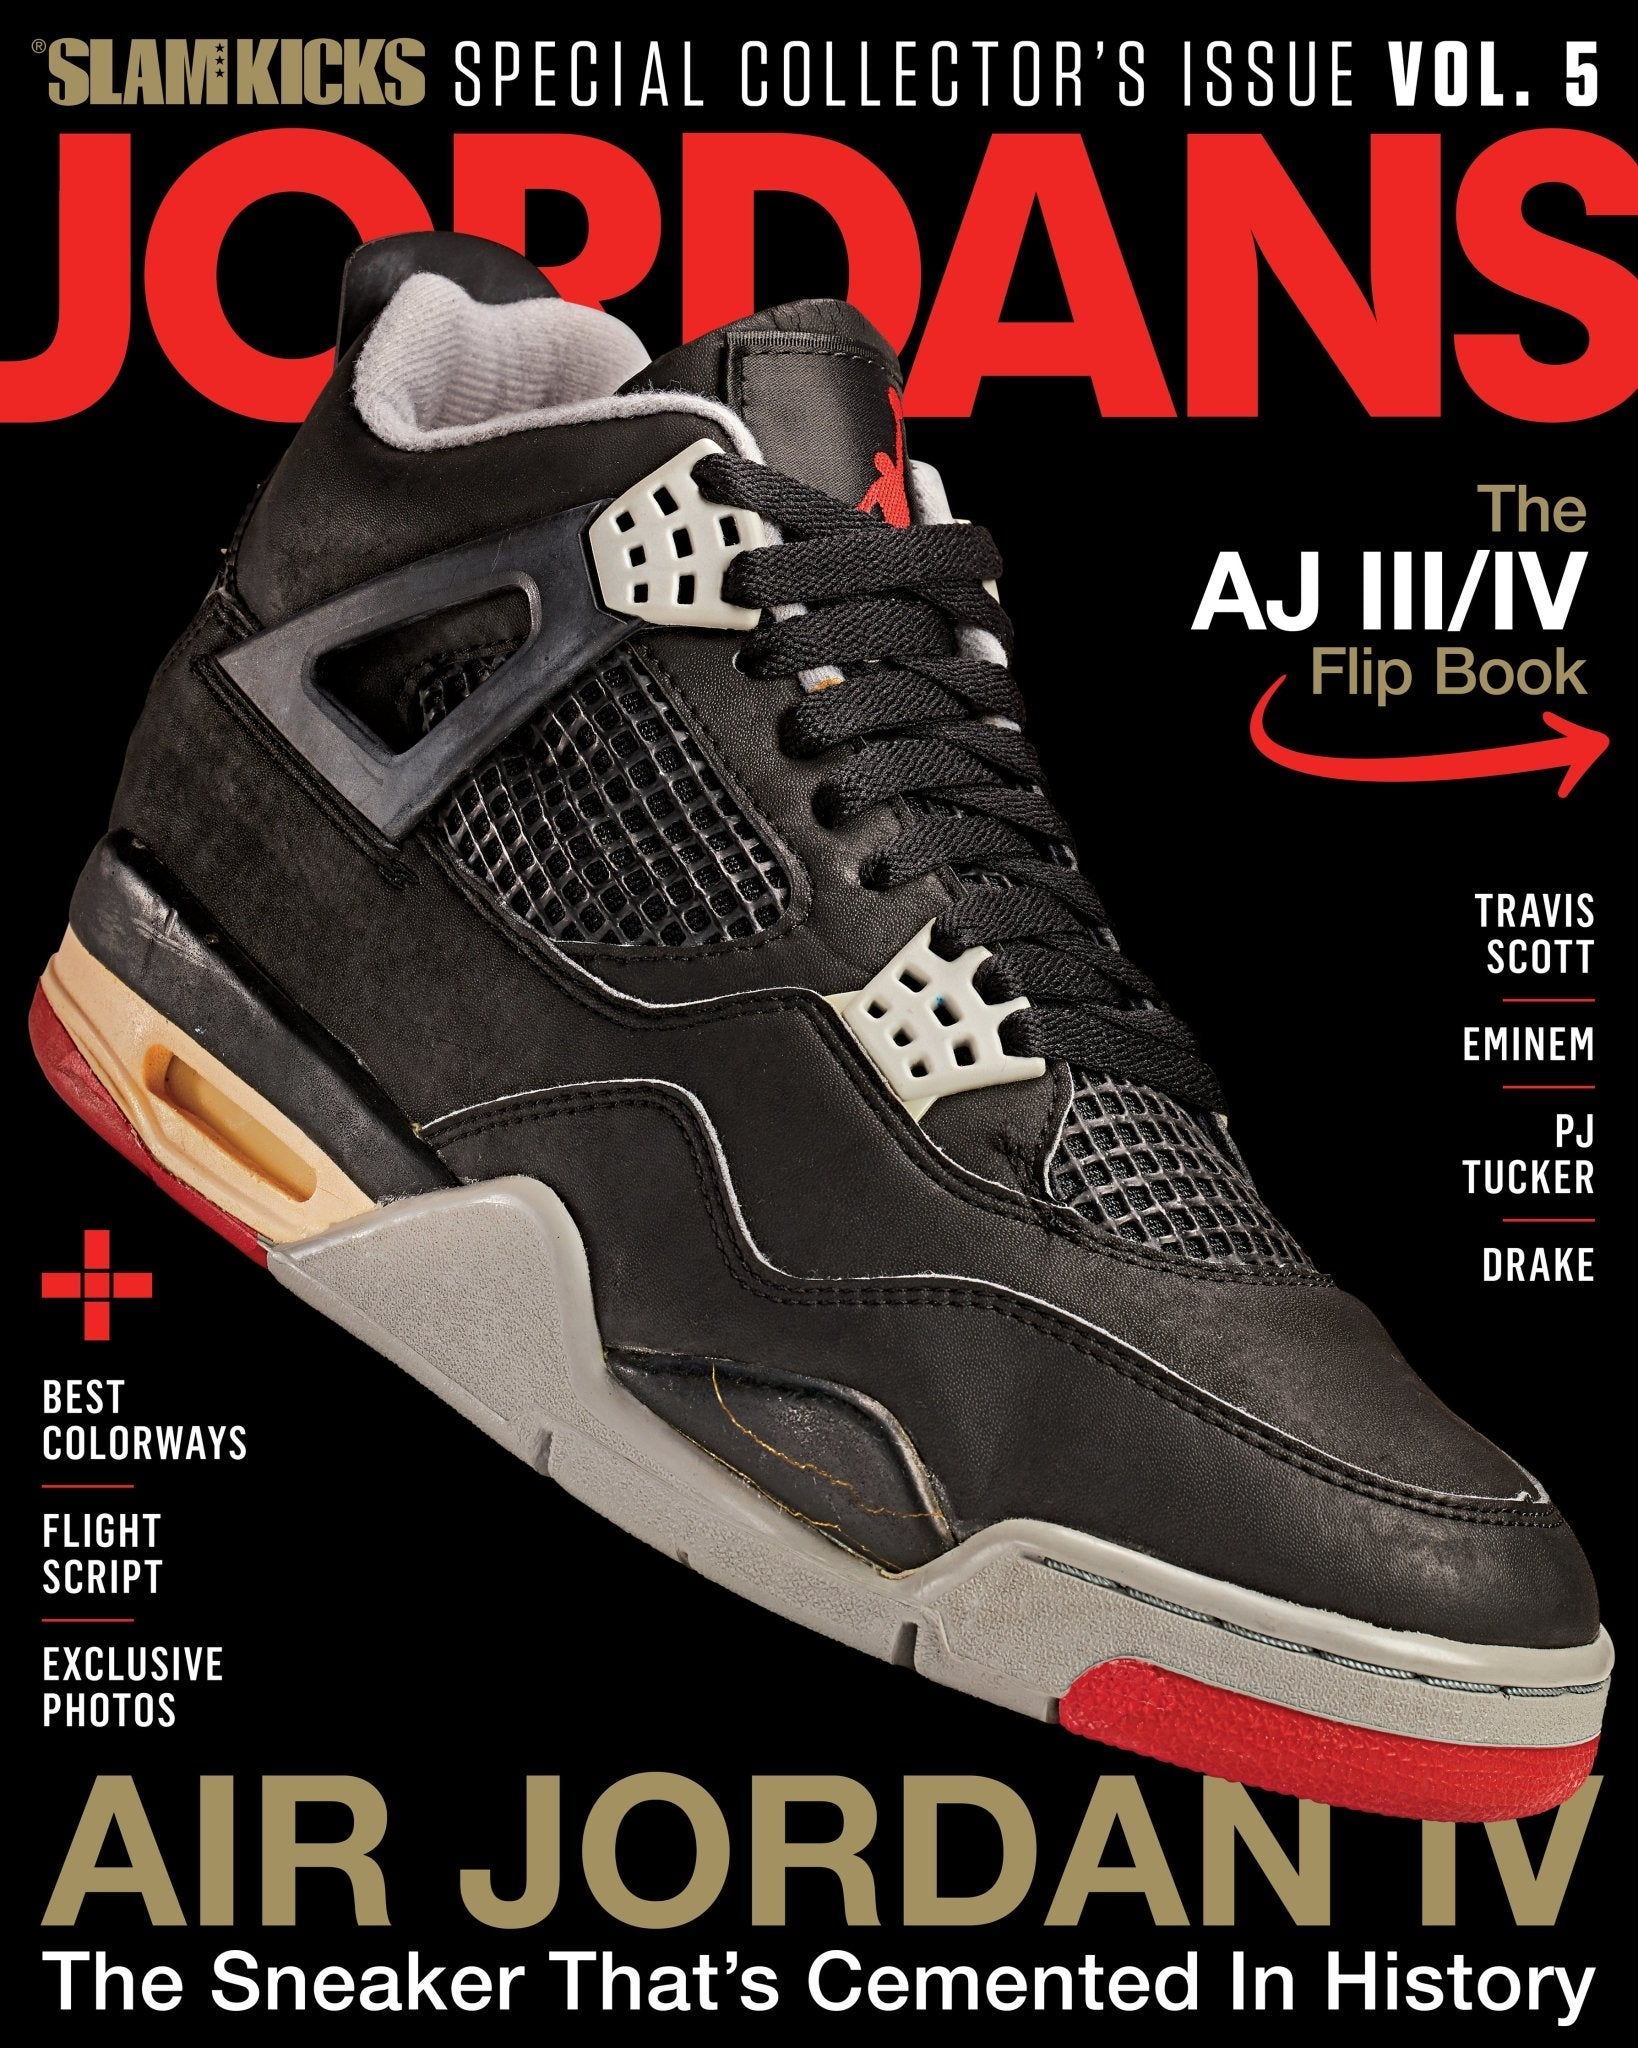 SLAM Kicks: Jordans Vol 6 Breds & Jordans Vol 5 (Bundle) - SLAM